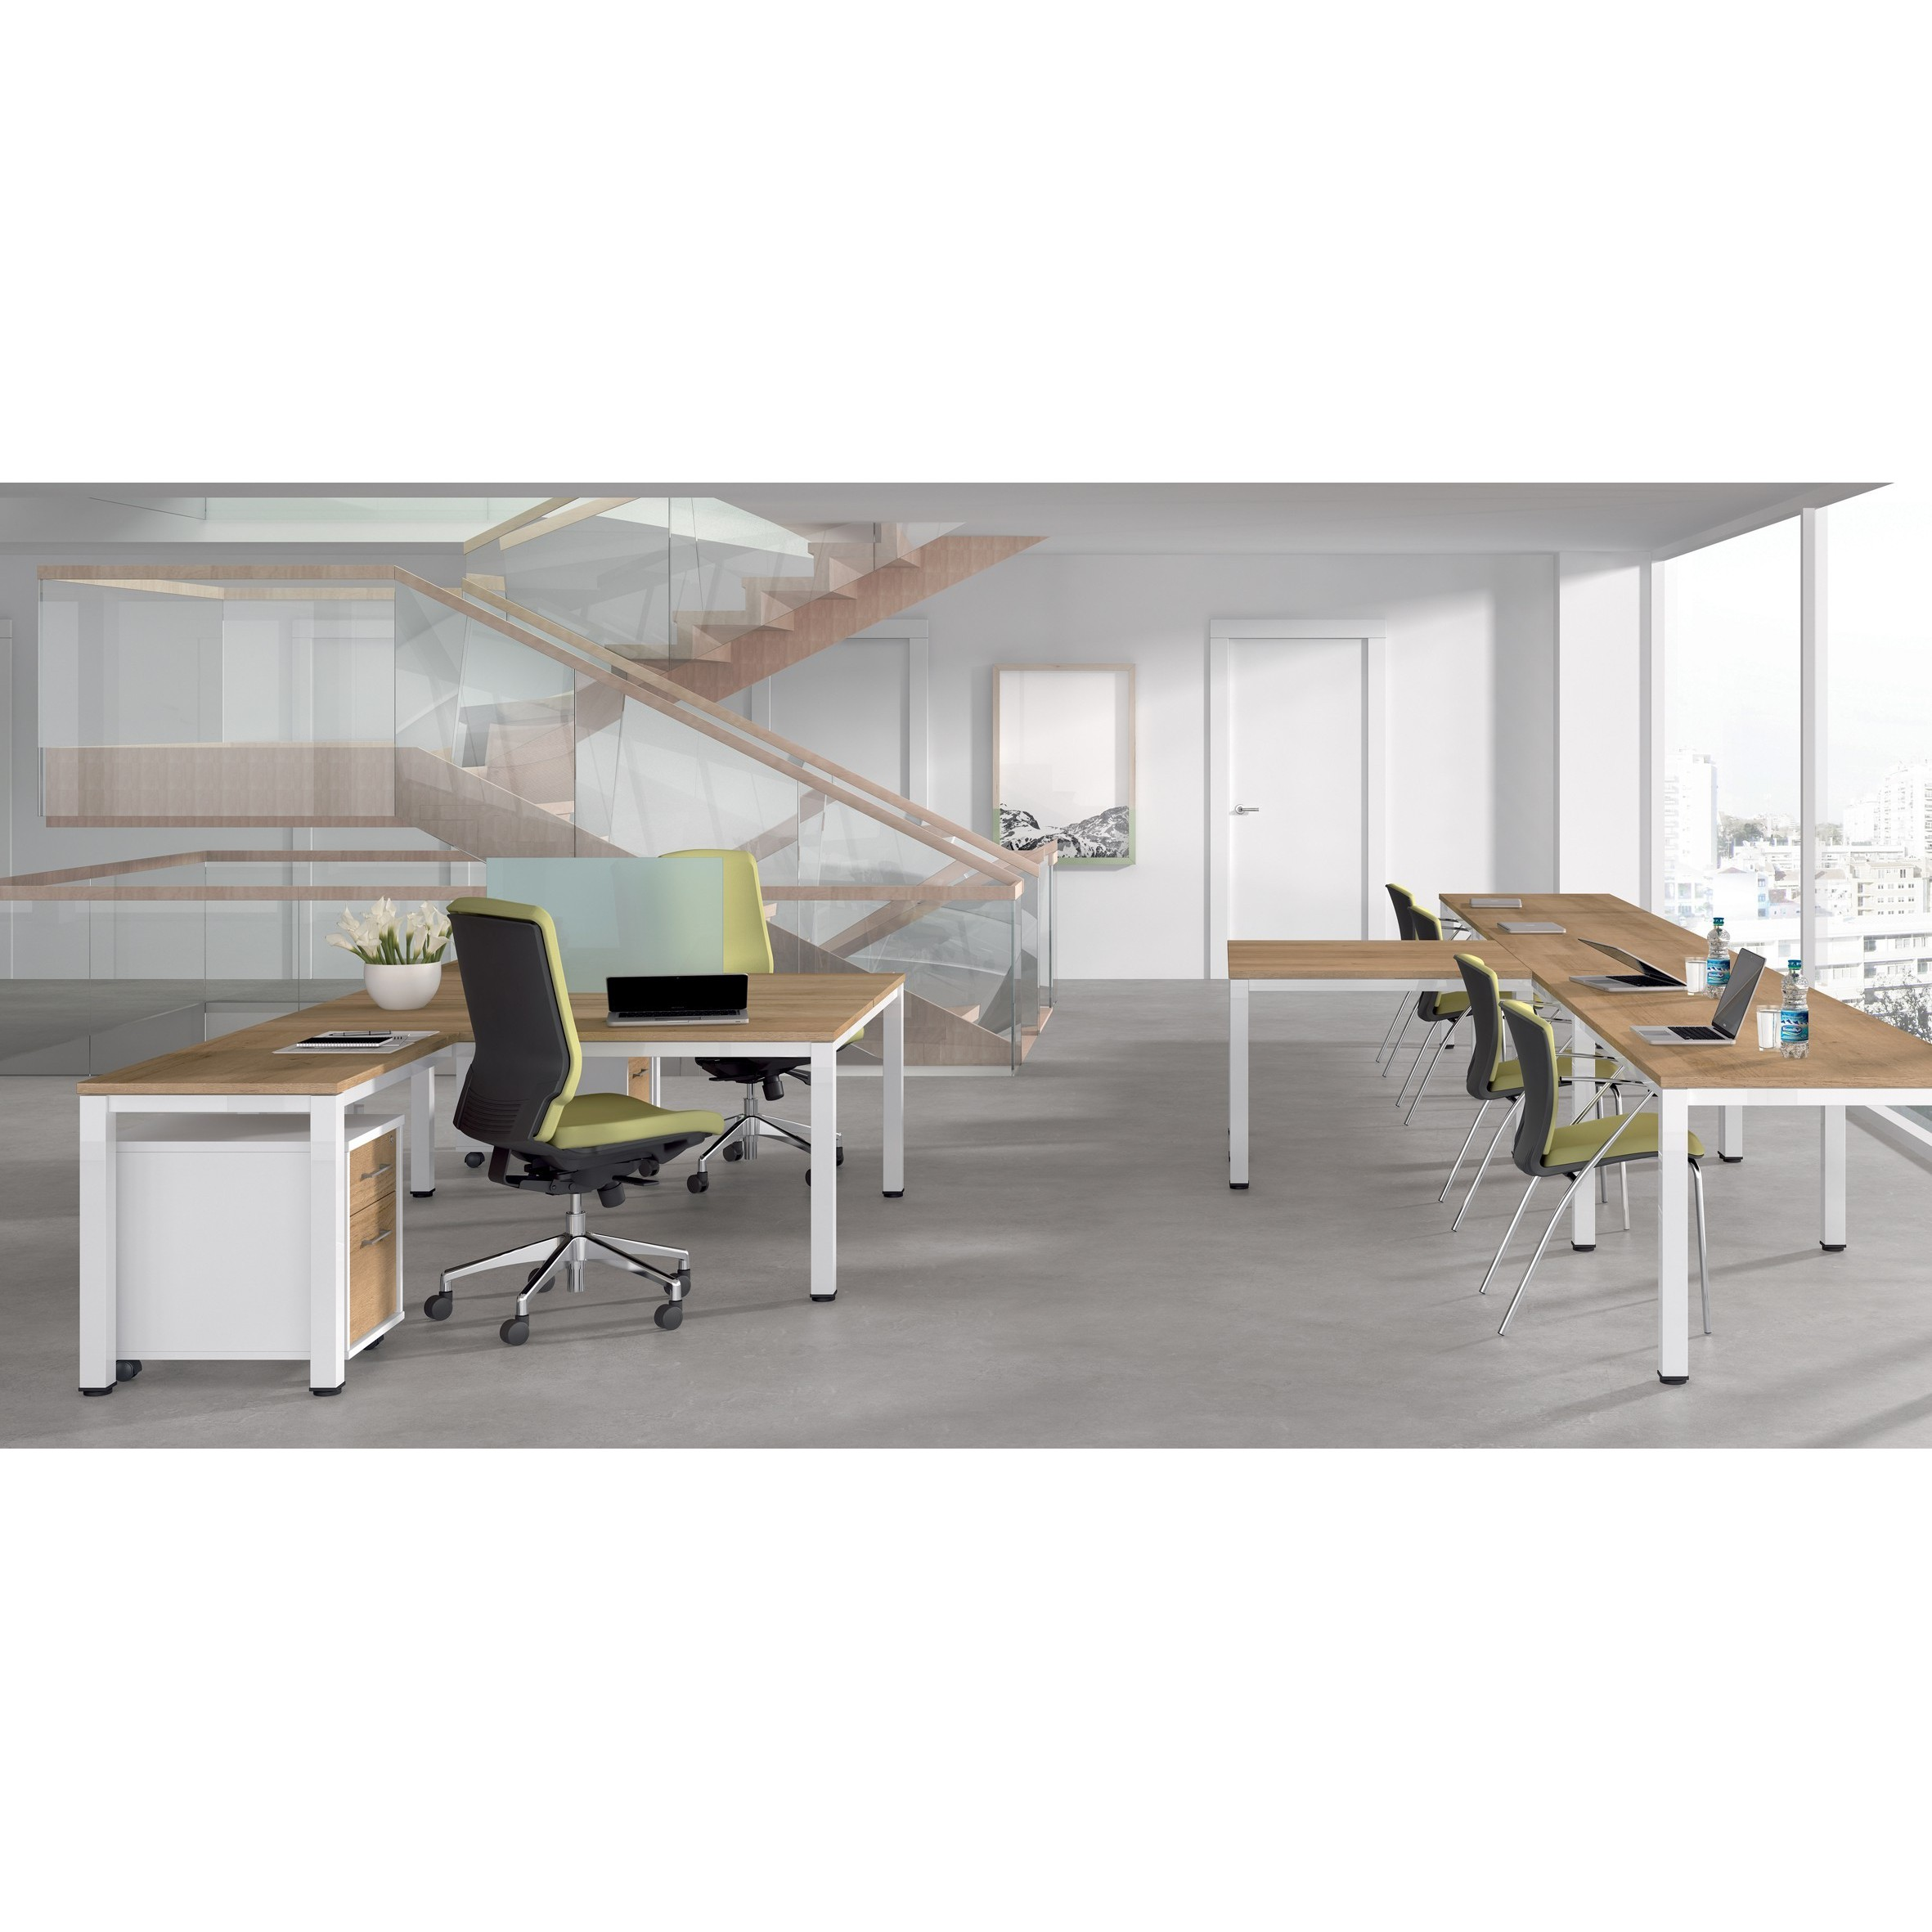 TABLE DE OFFICE QUADRUPLE (4 POSTS) EXECUTIVE SERIES 320x163 CHROME/BEECH